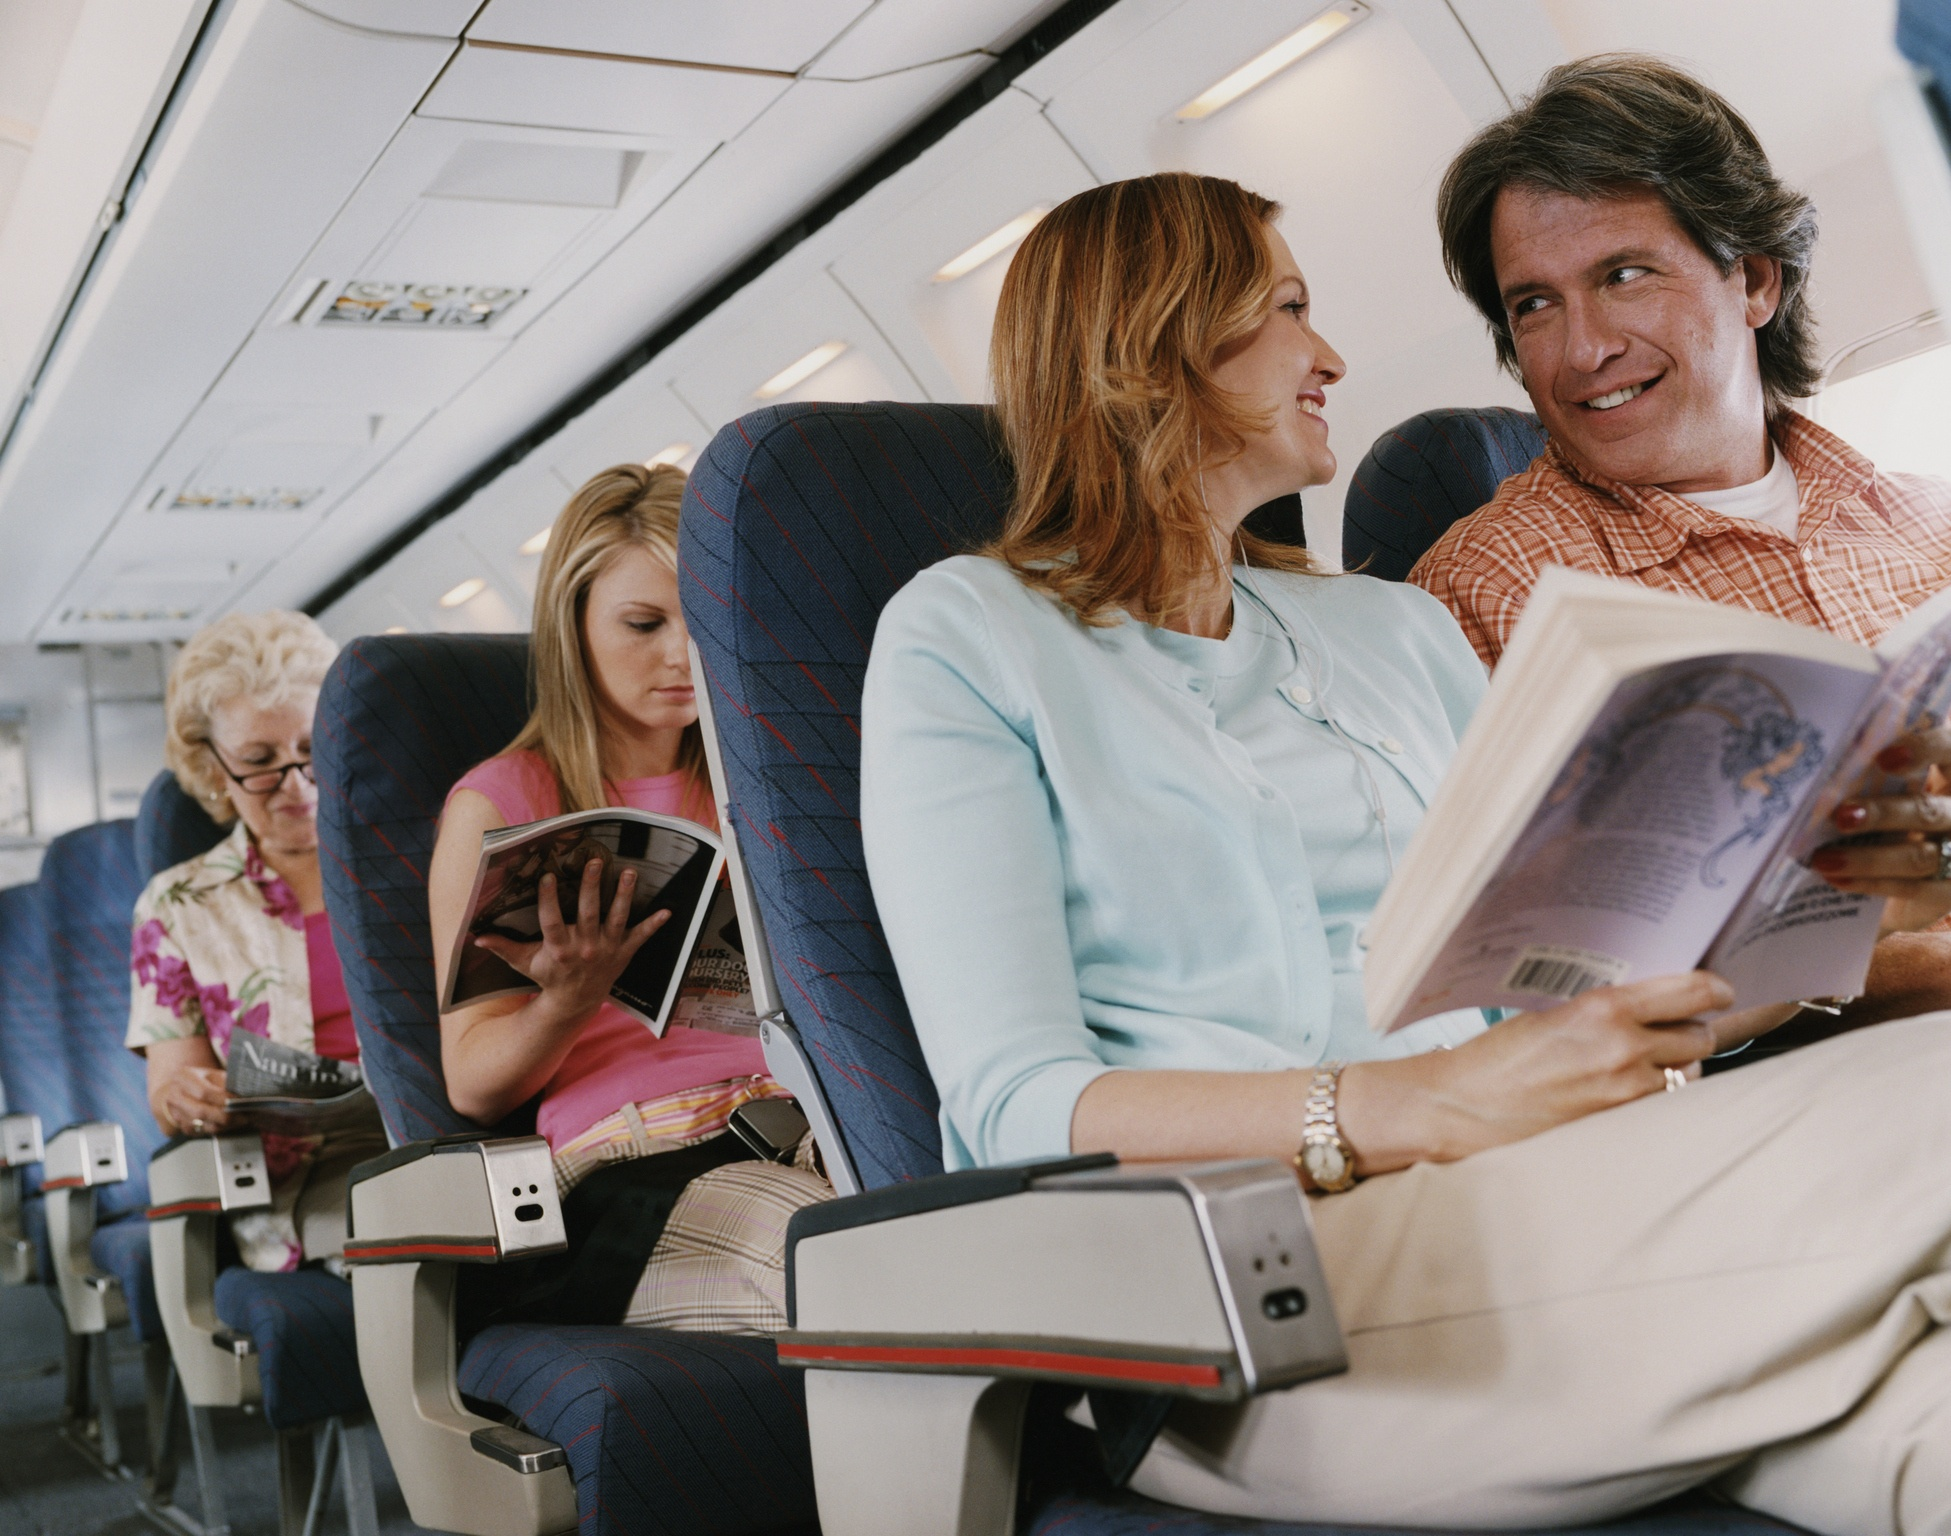 Couple talking on an airplane